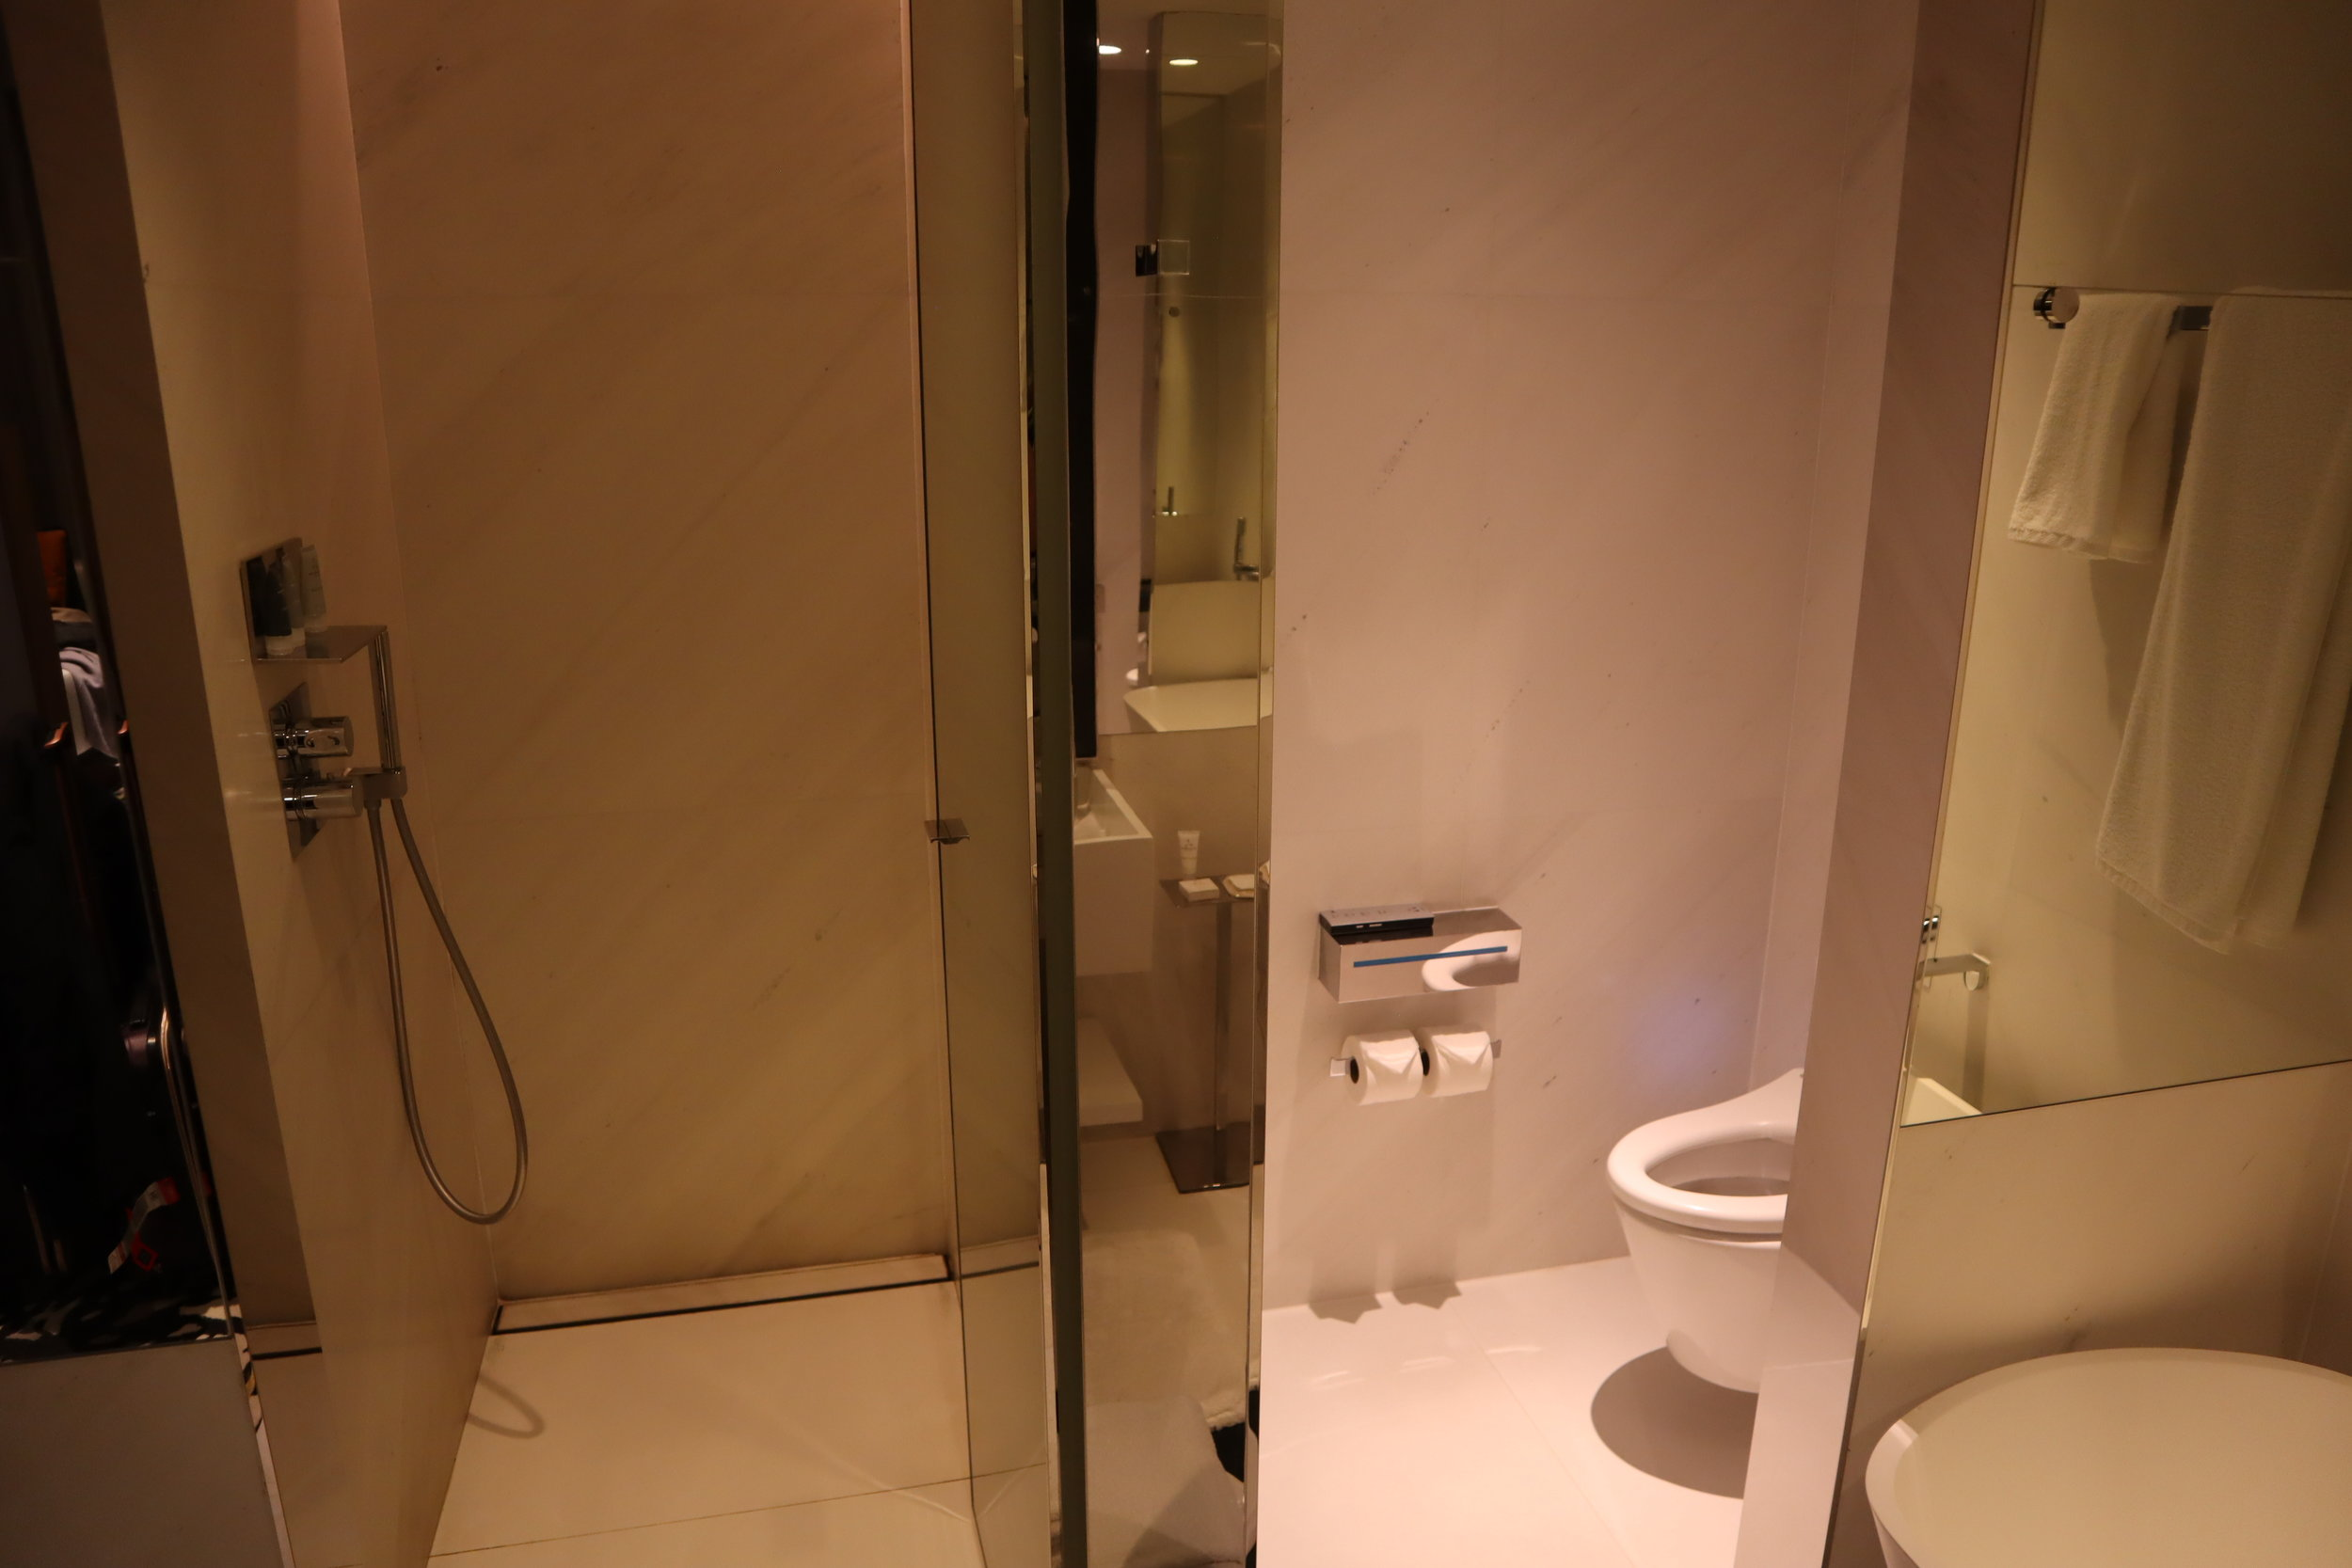 JW Marriott Singapore South Beach – Shower and toilet